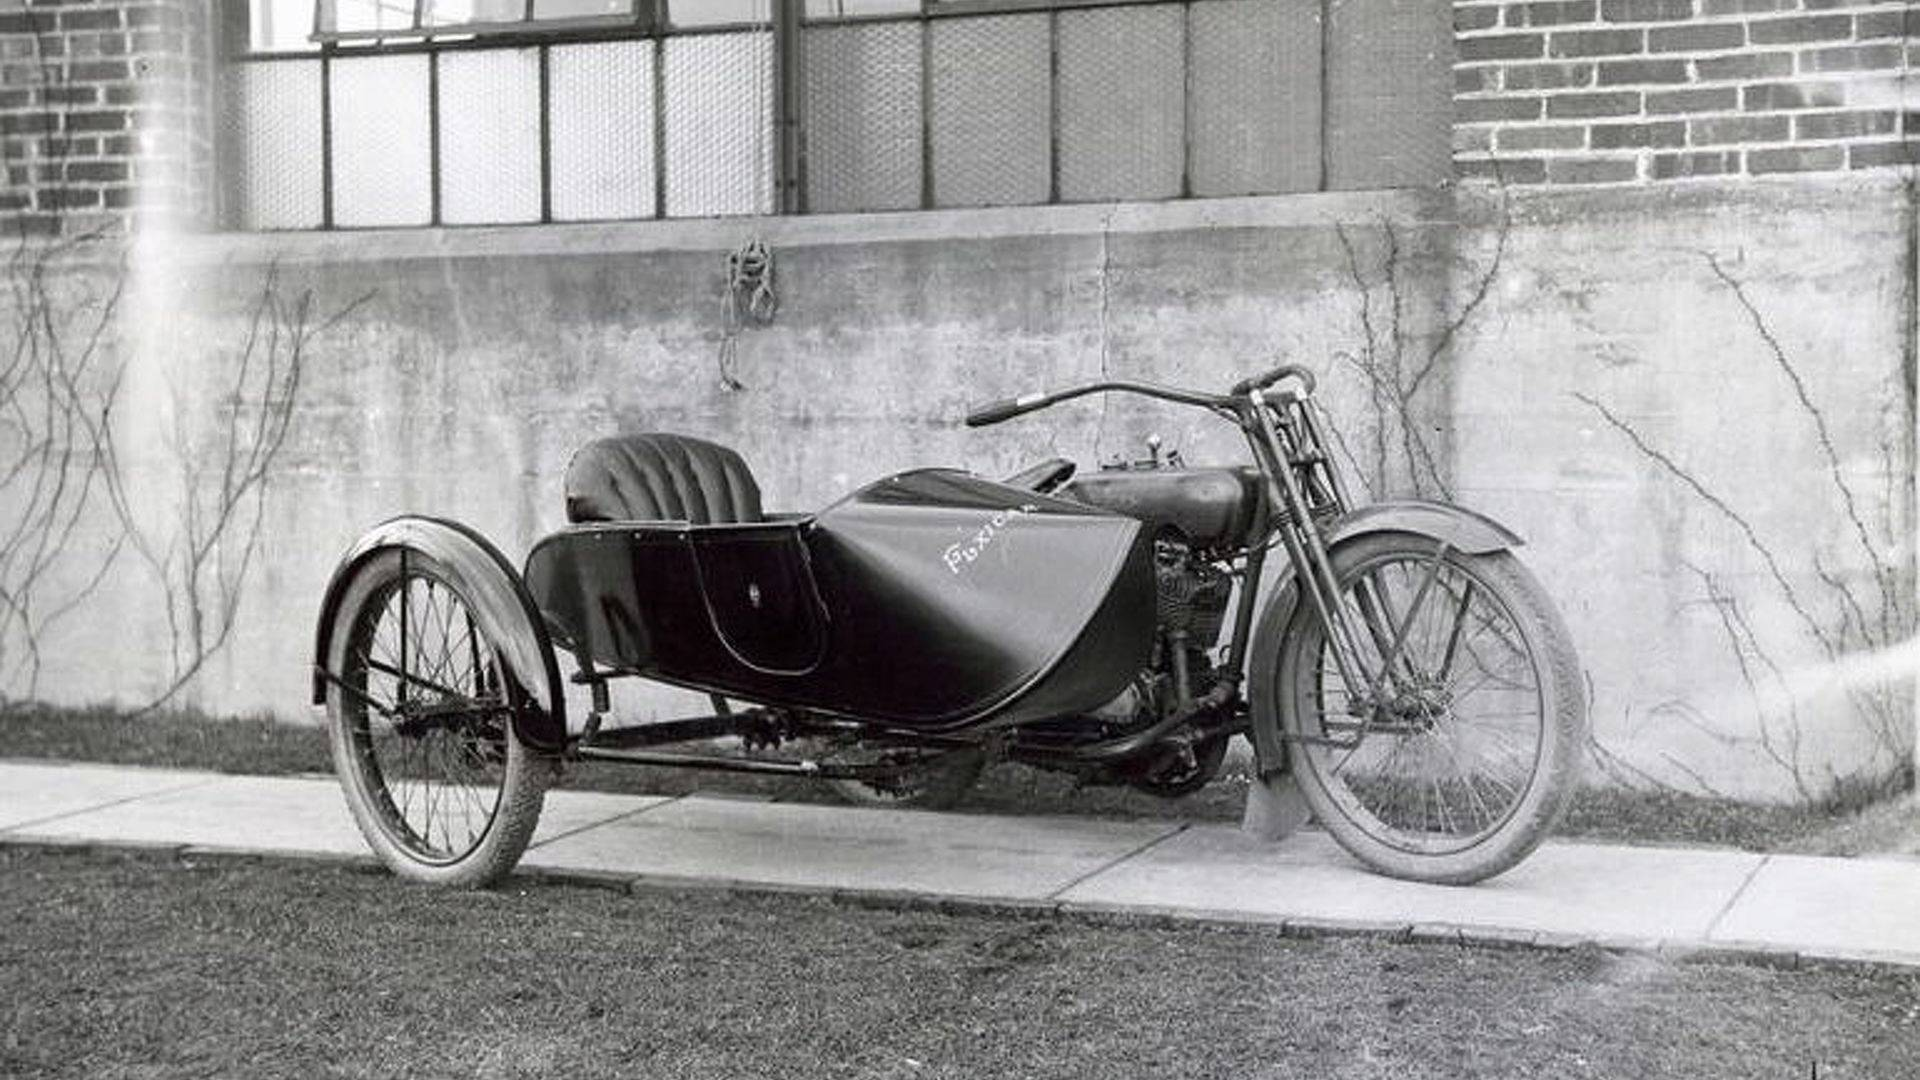 The Flxible Side Car: A Different Angle on Sidecar Design